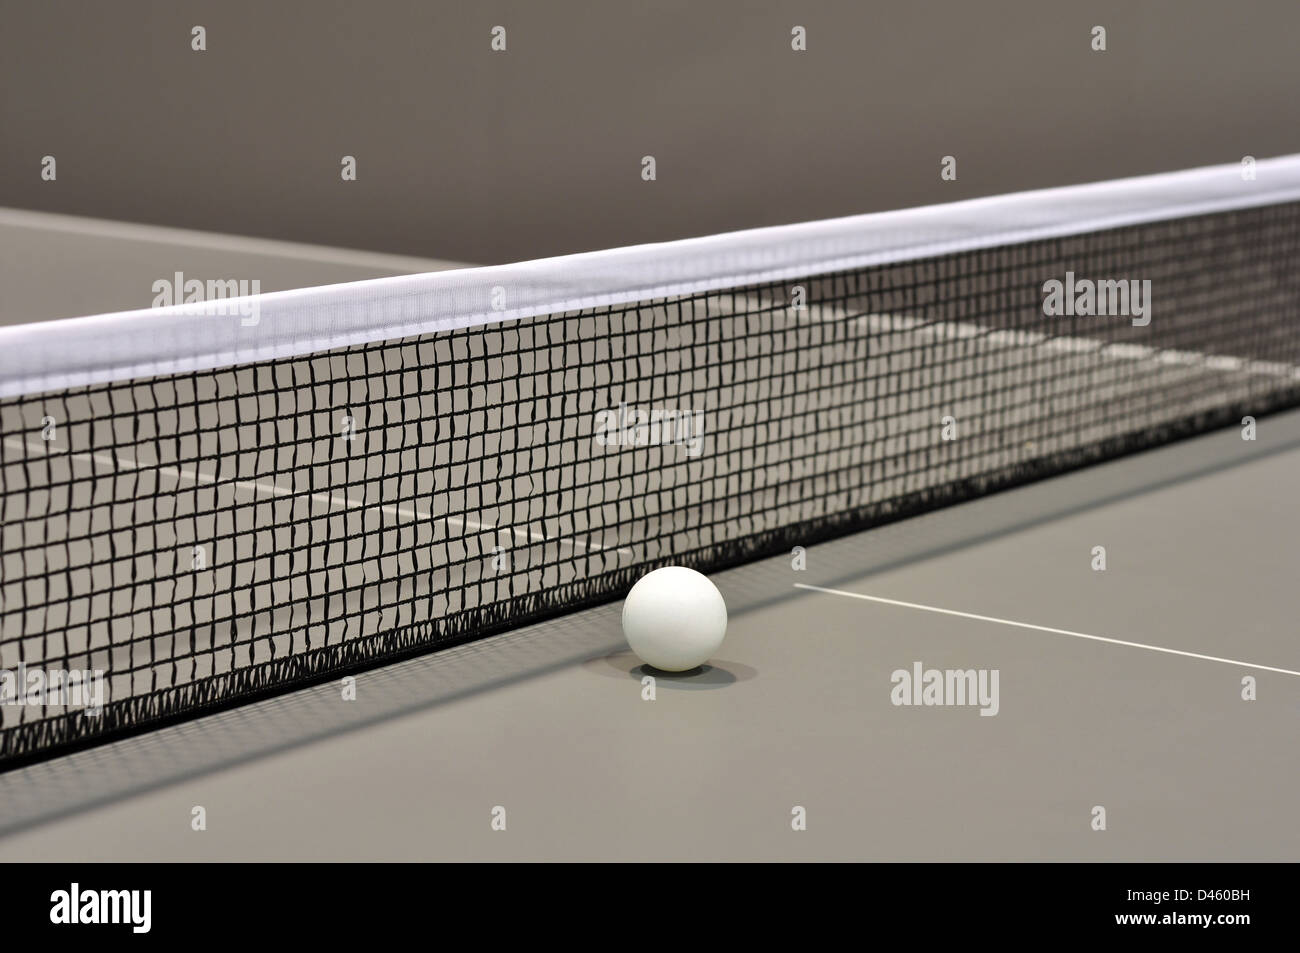 Tennis de table Still Life with selective Focus closeup Photo Stock